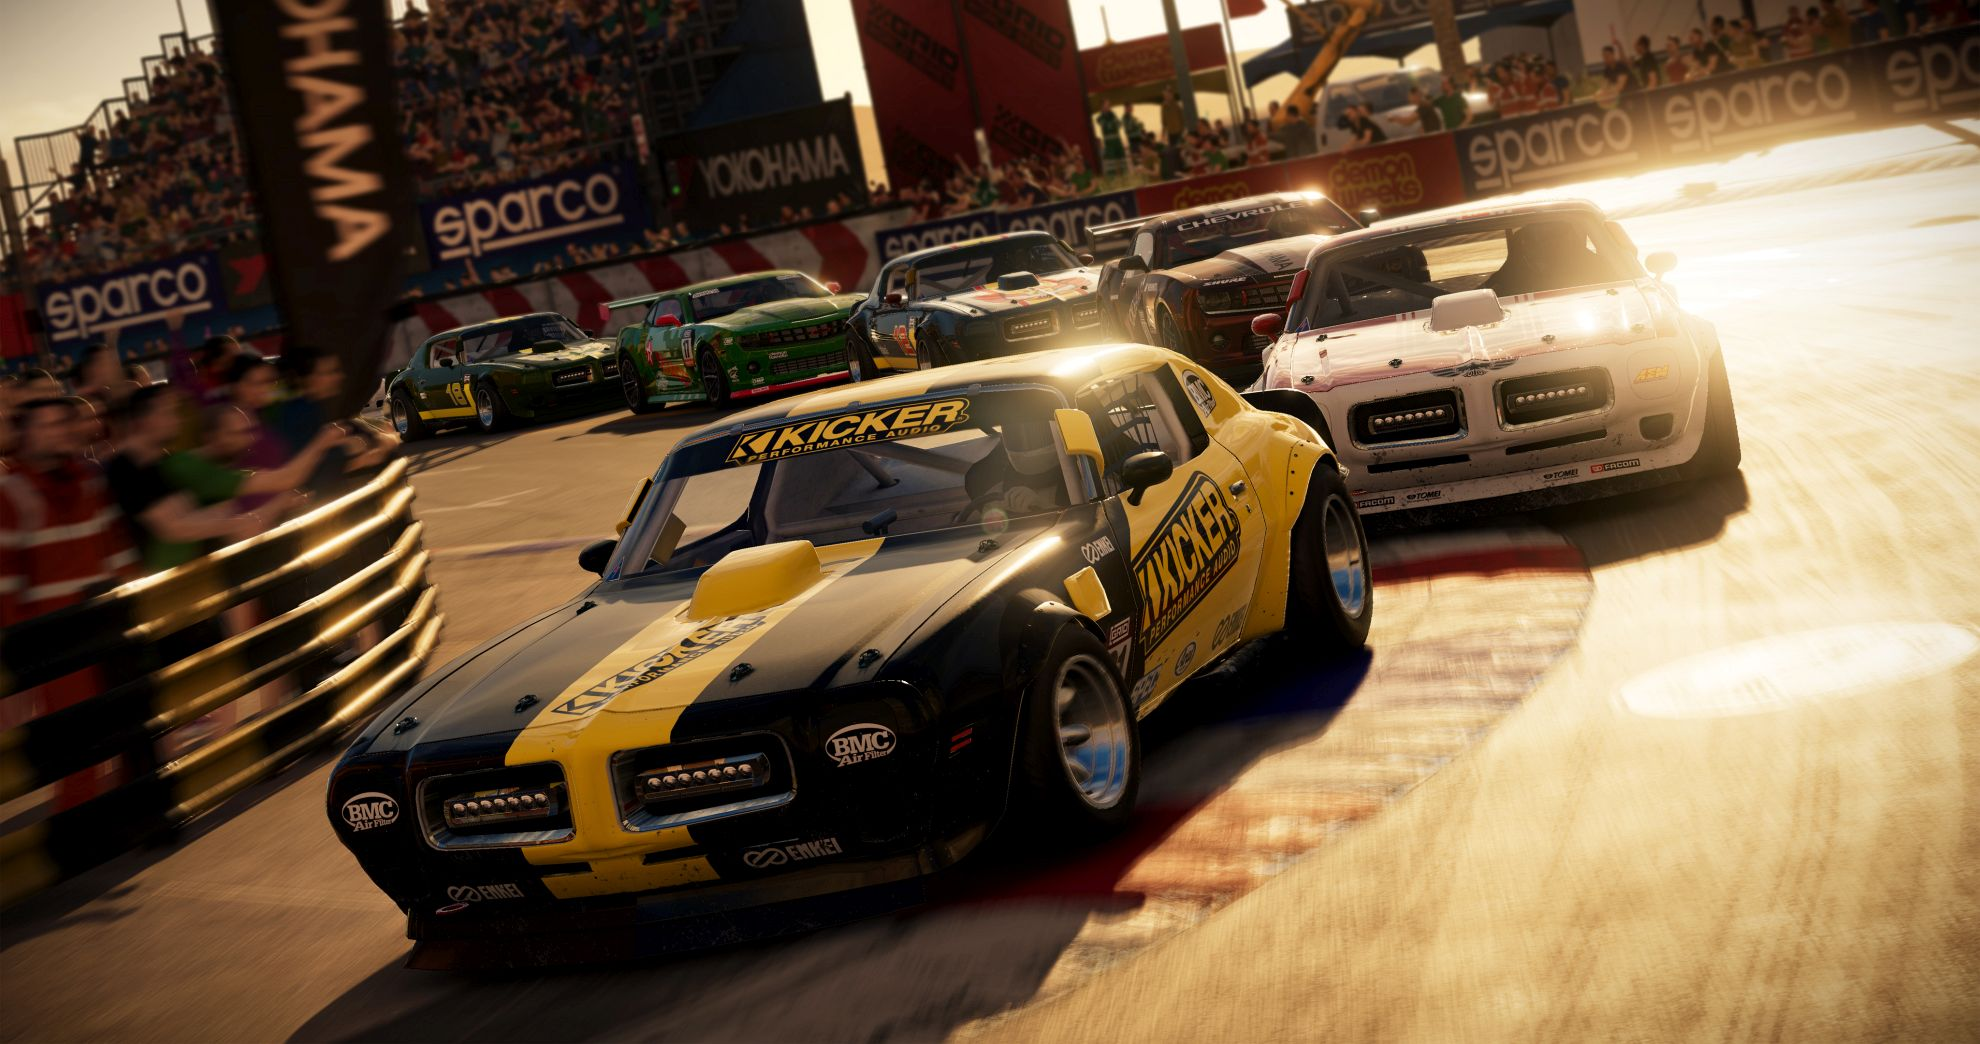 New Grid gameplay trailer shows off some hot racing action